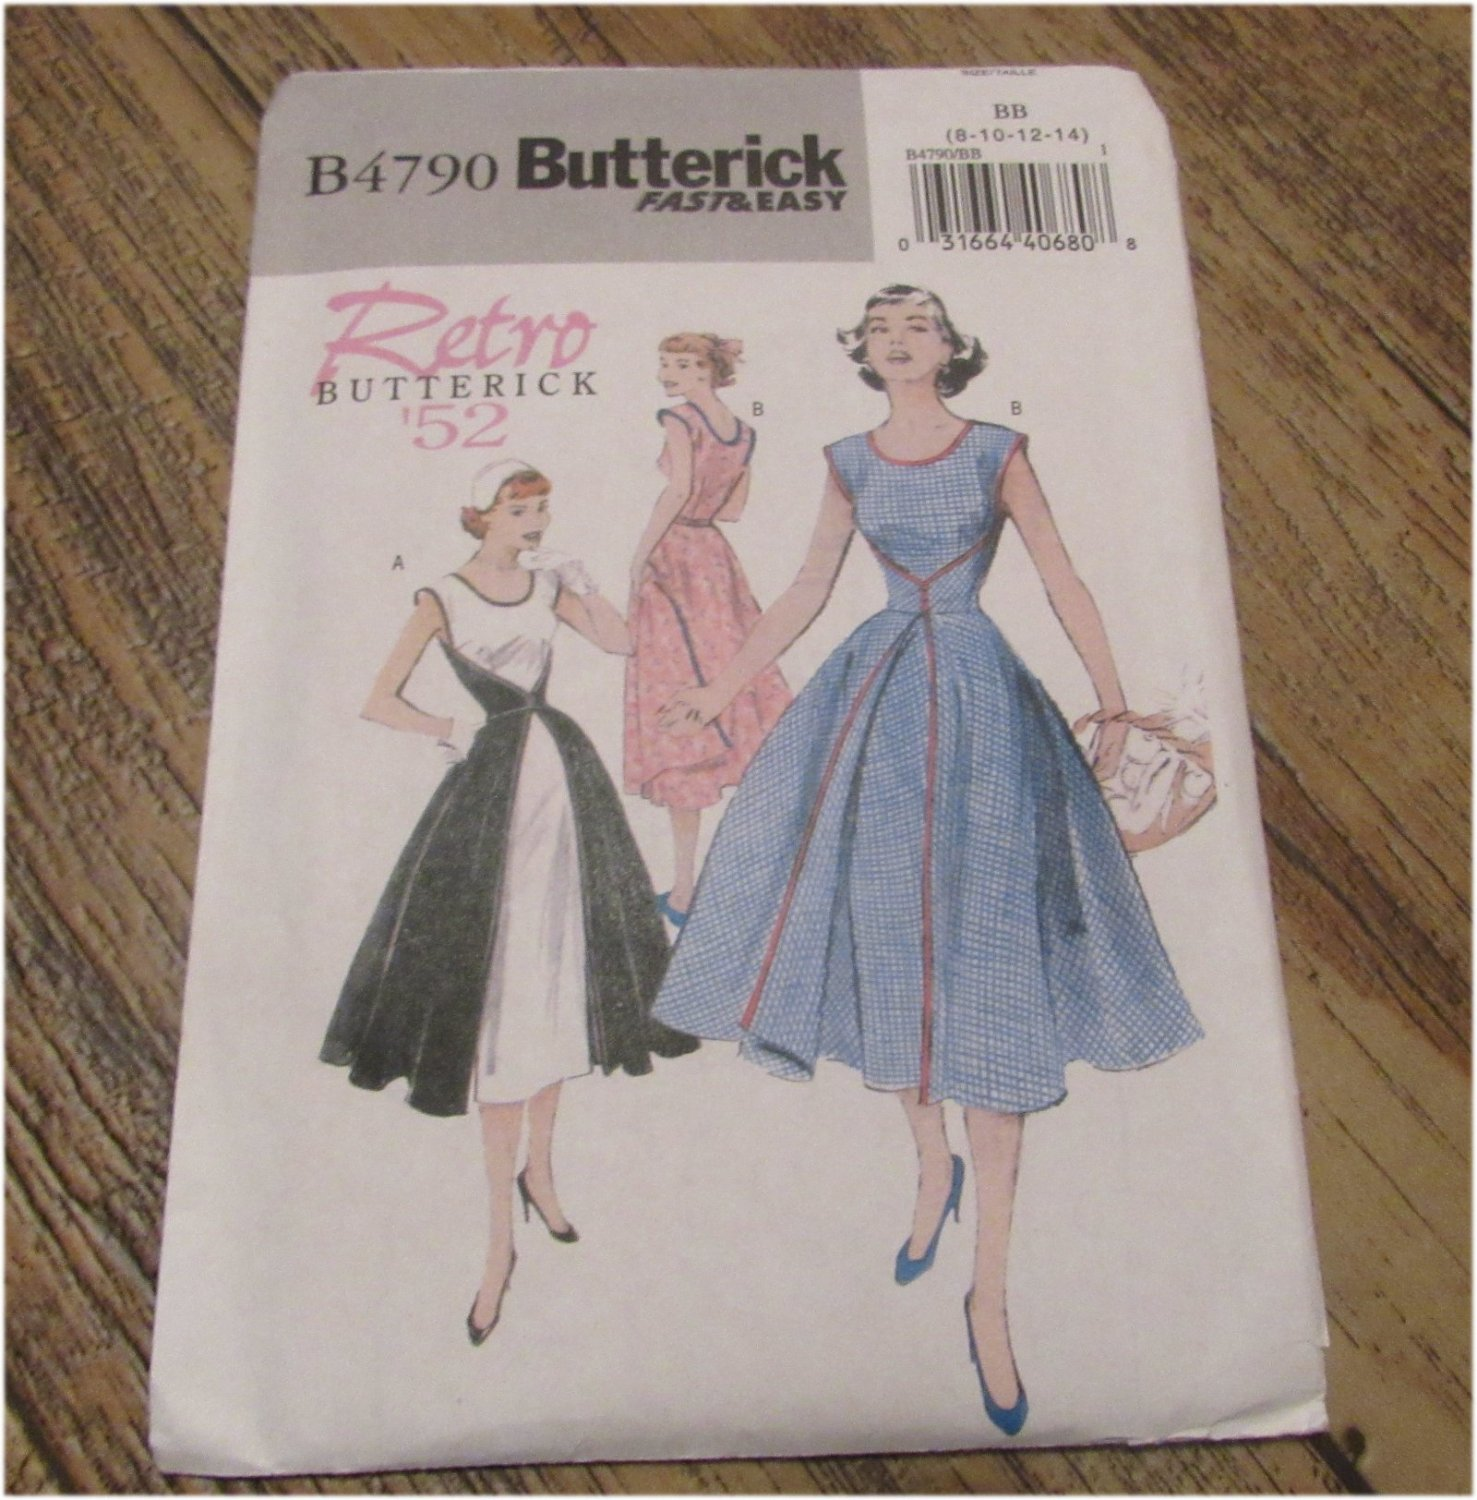 Retro Butterick '52 Sewing Pattern Misses Wrap Dress UNCUT FREE SHIPPING